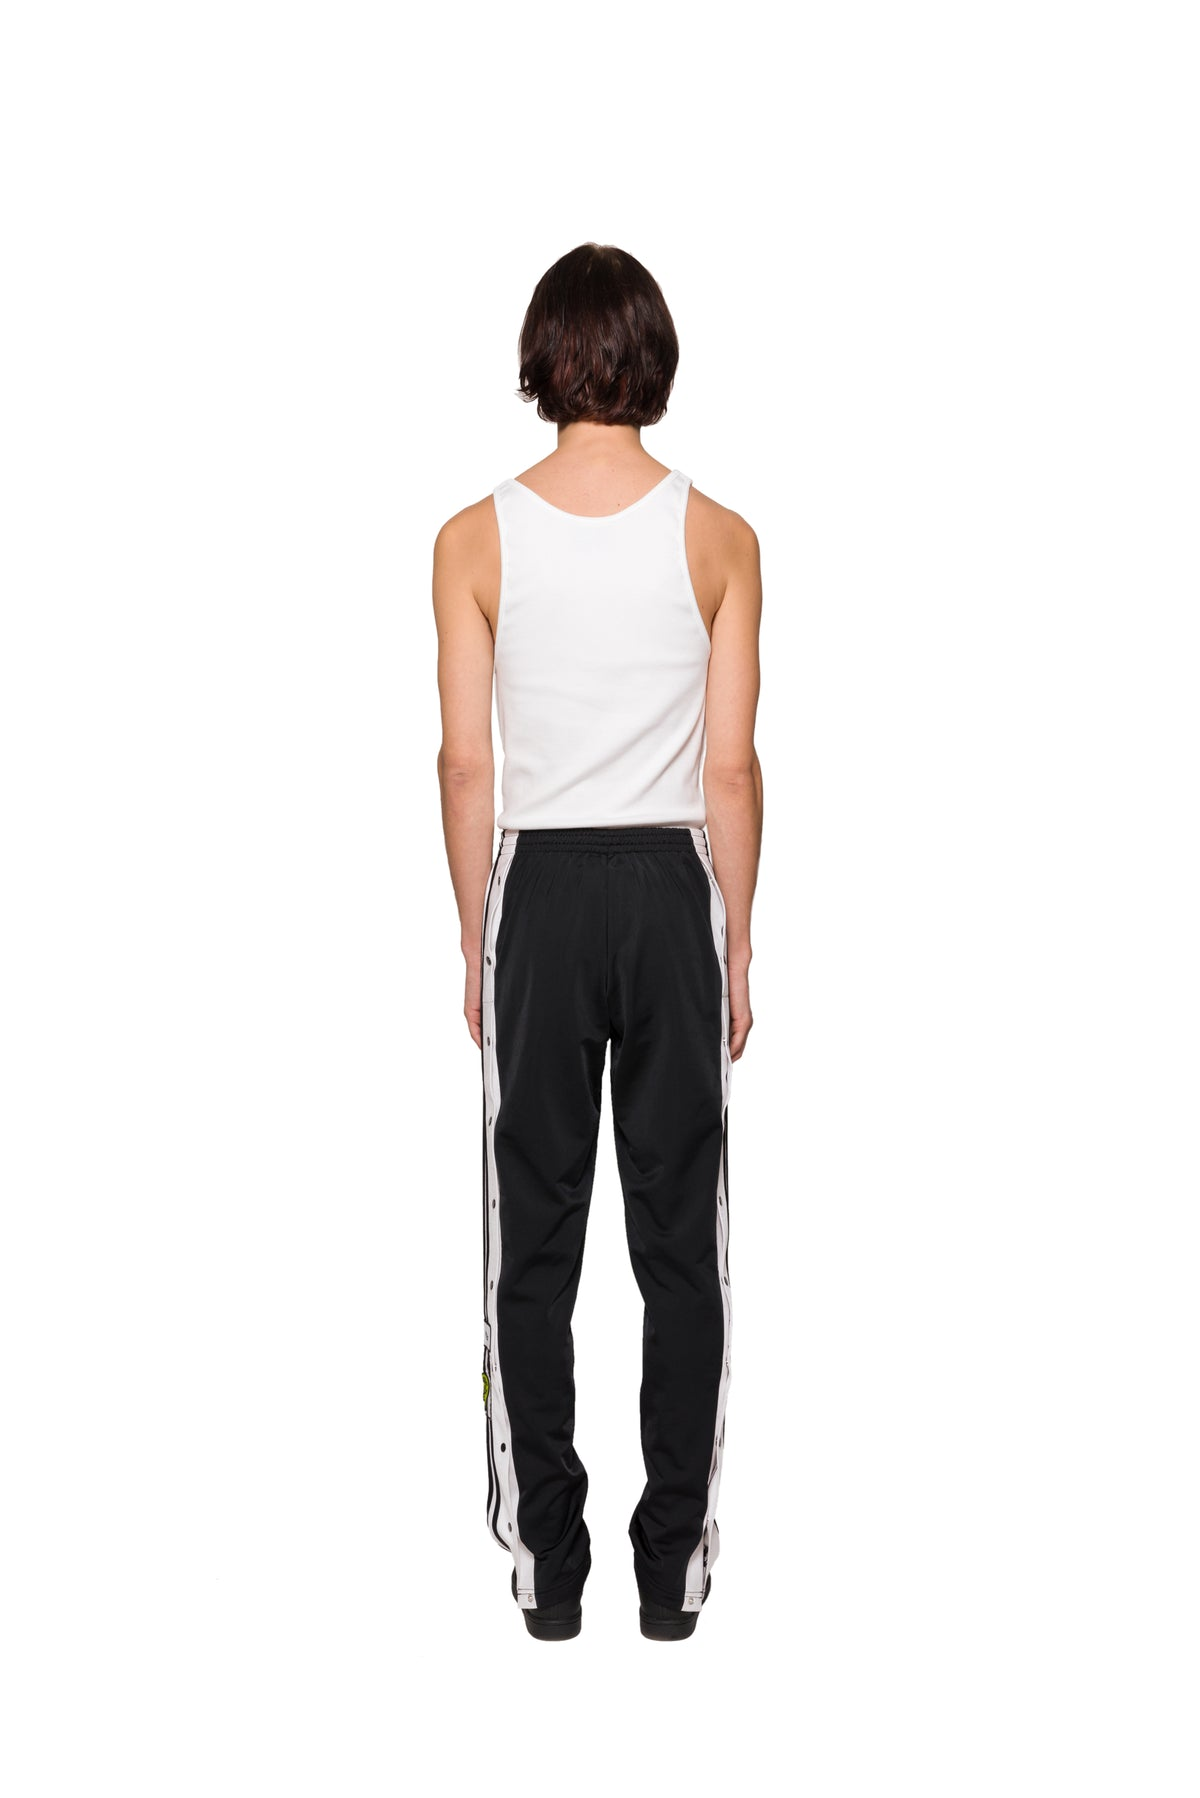 adidas by 032c Adibreak Track Pants